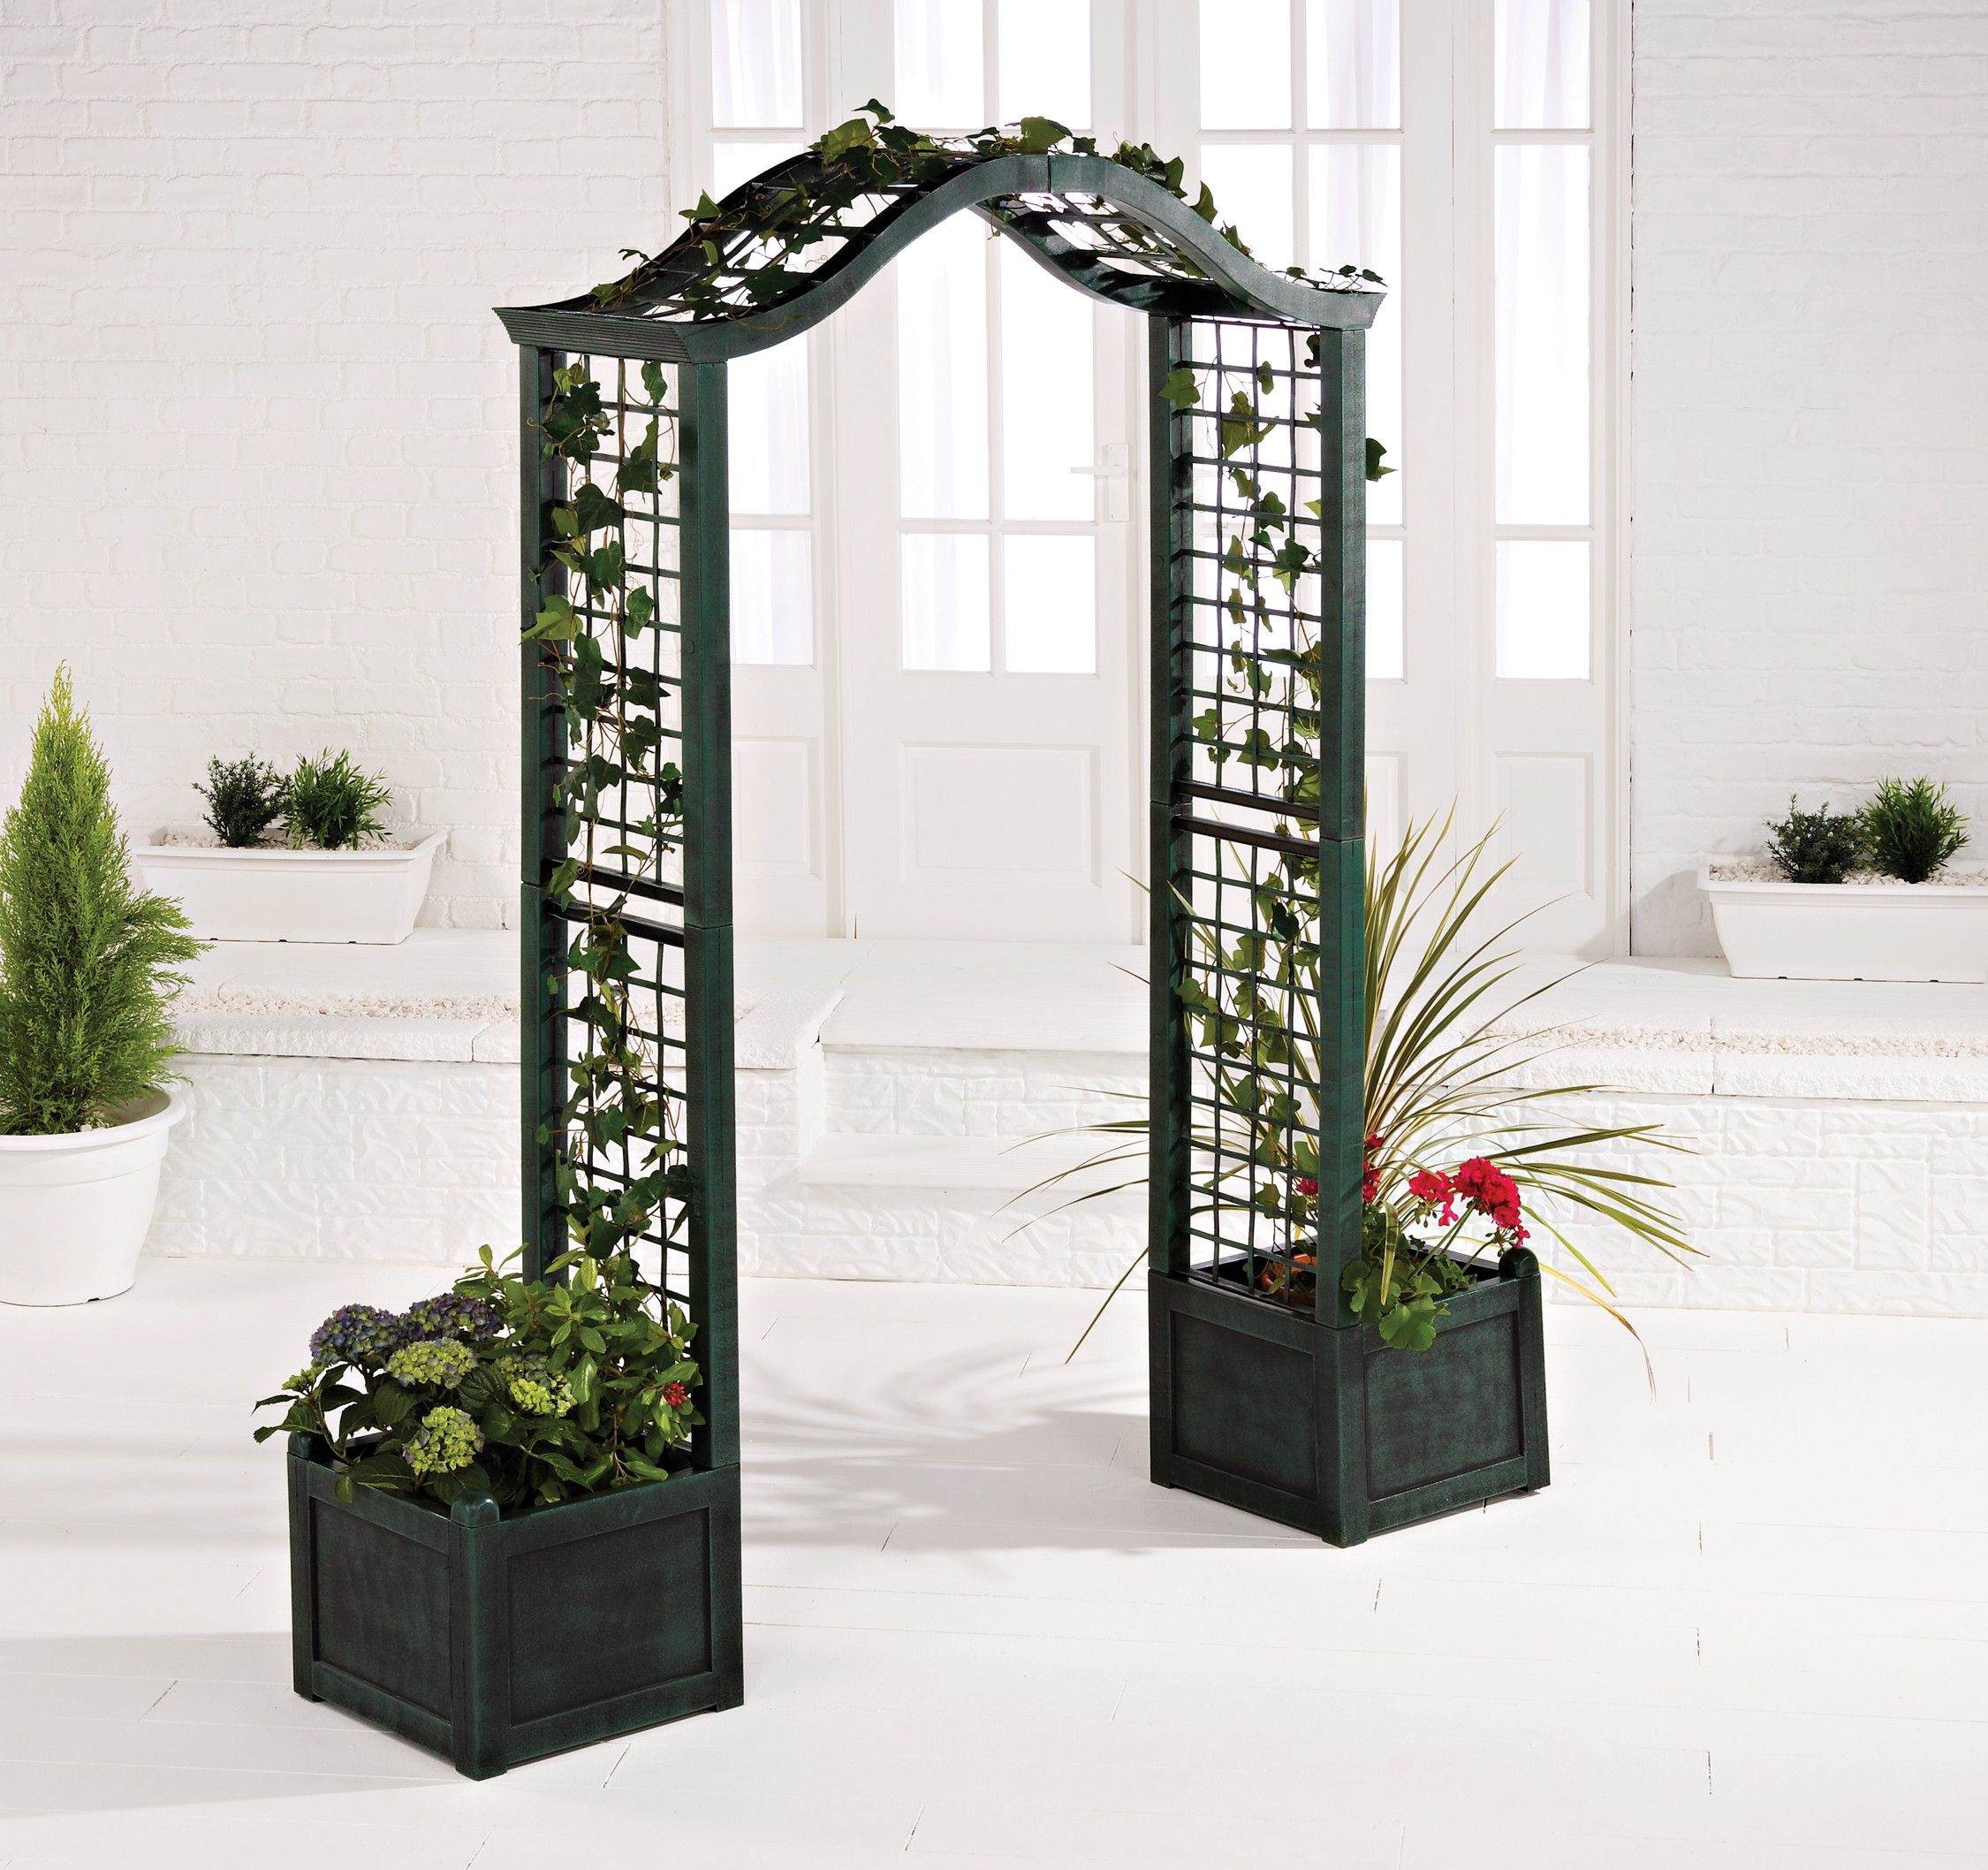 Love How They Incorporated The Trellis Planters With The Archway Perfect For Garden Entrance